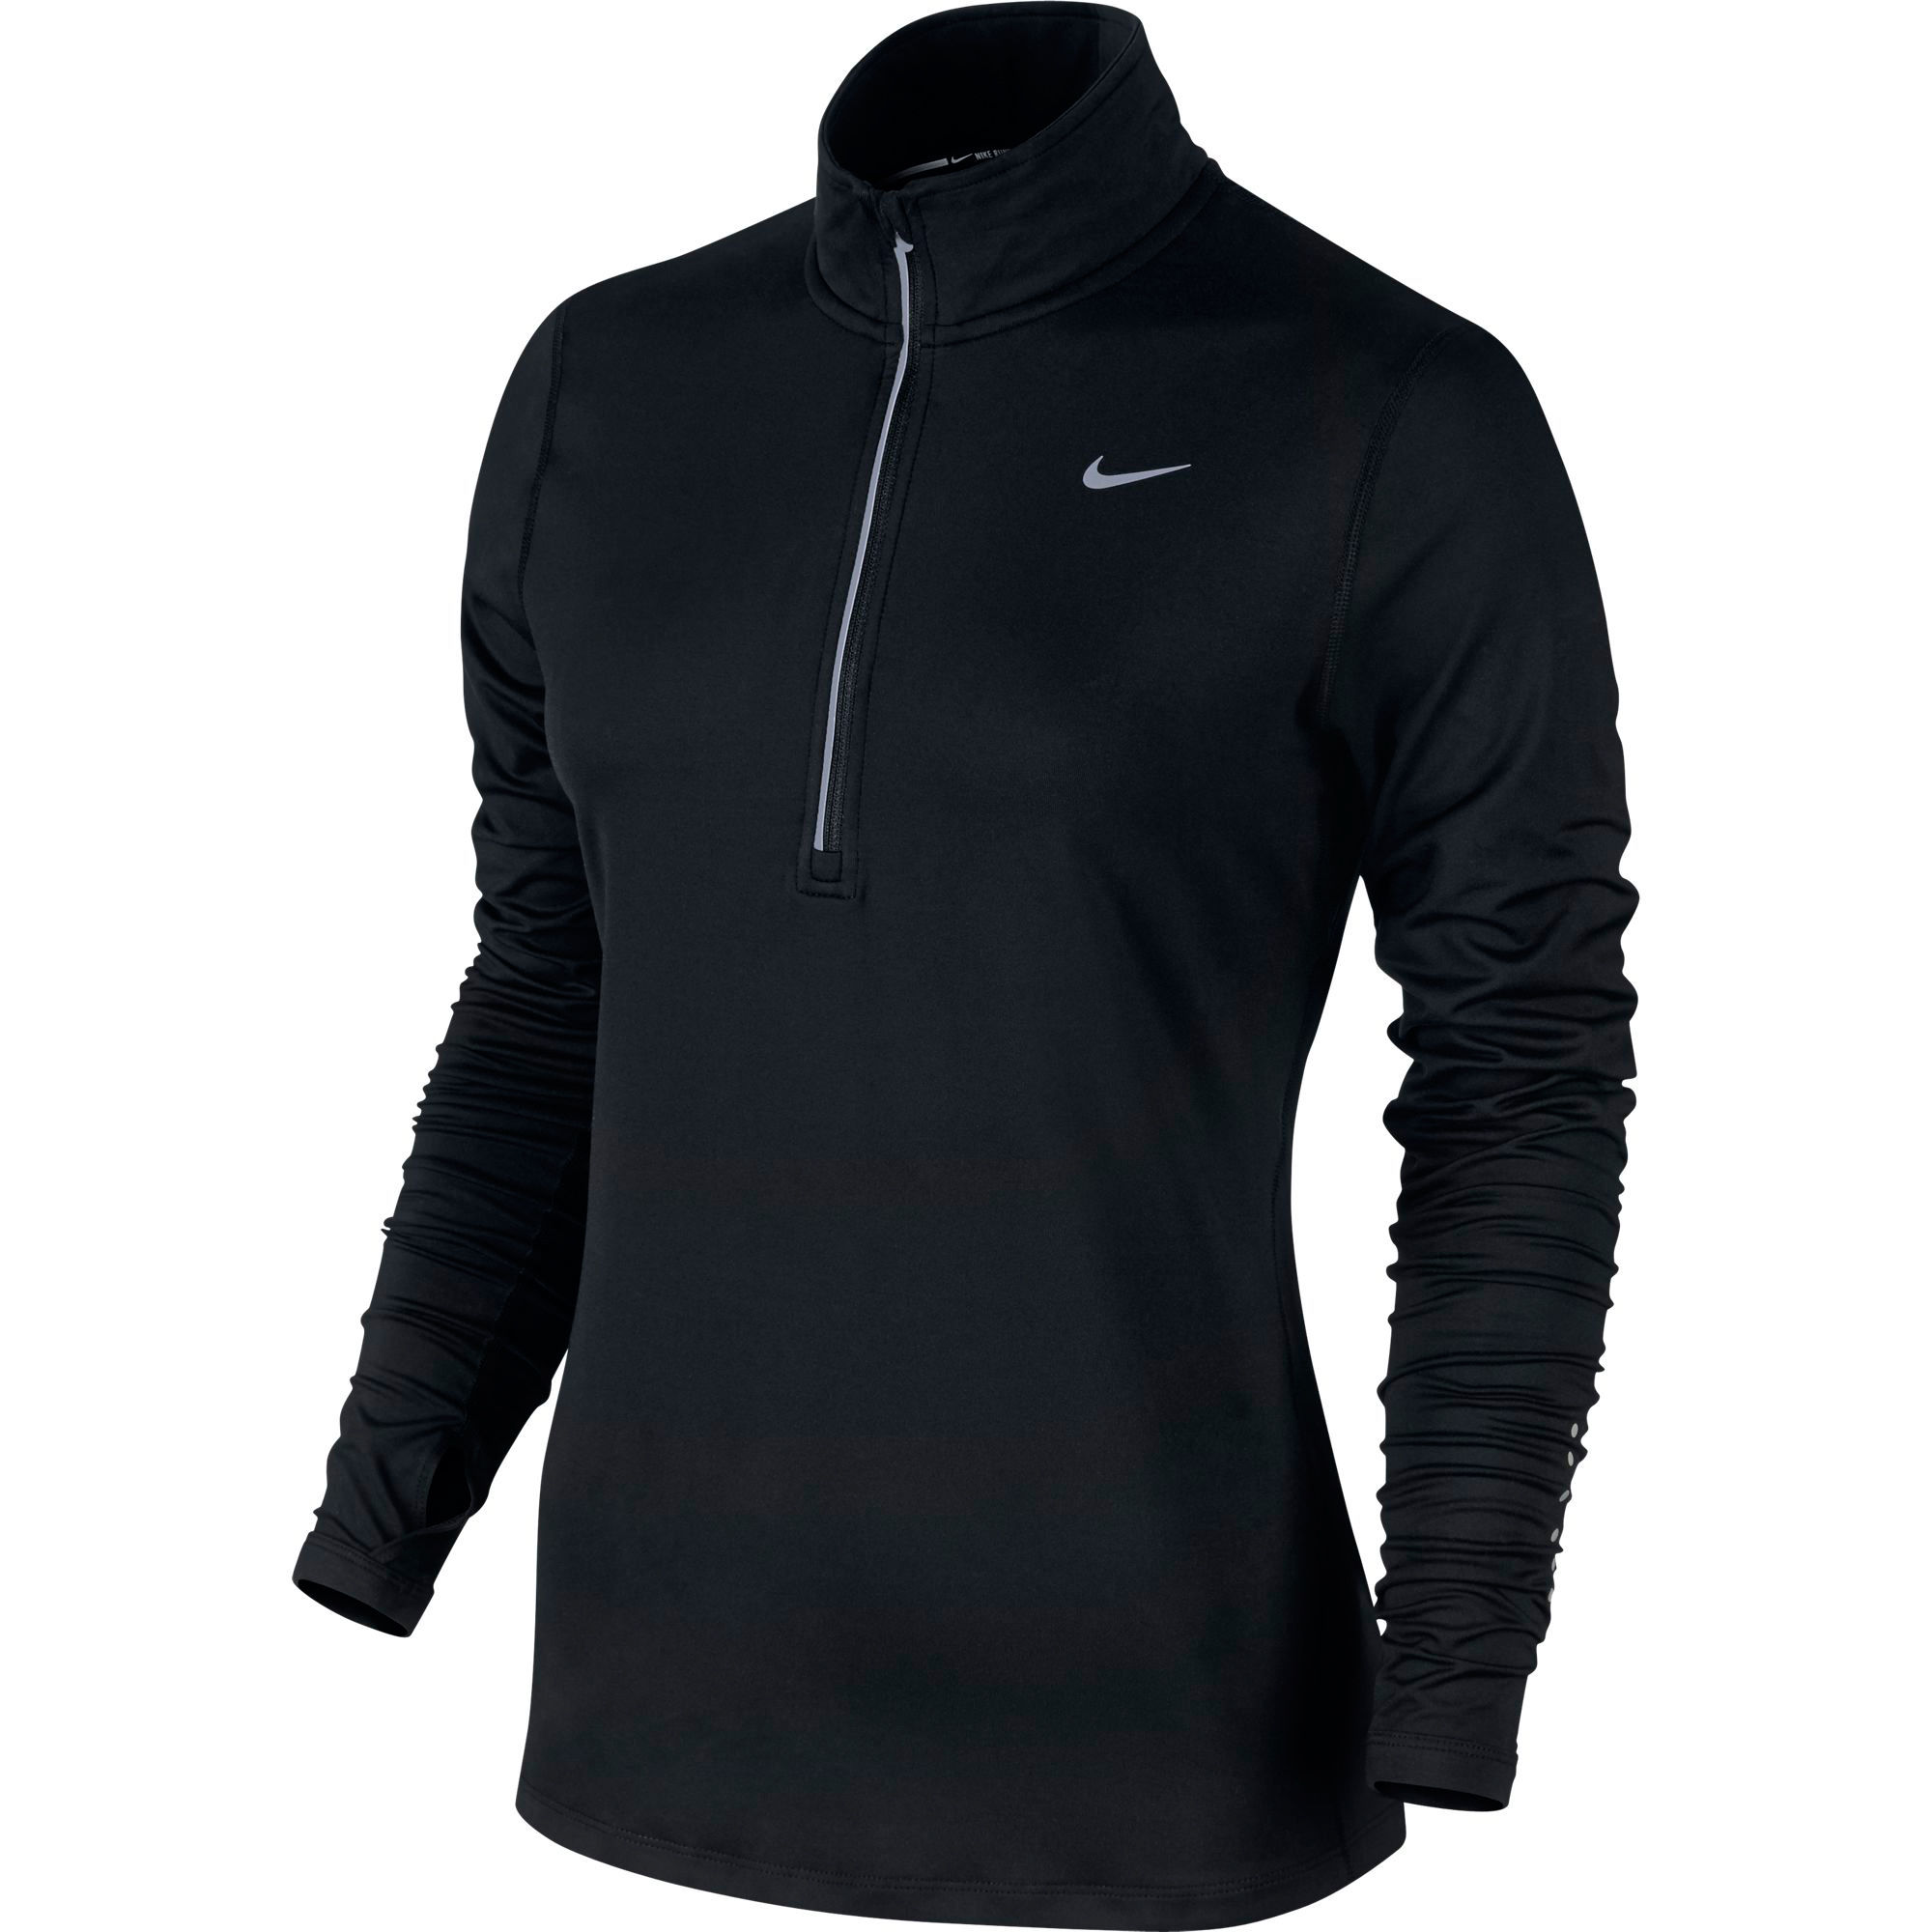 Image result for Nike Women's Dri-FIT? Element Half Zip